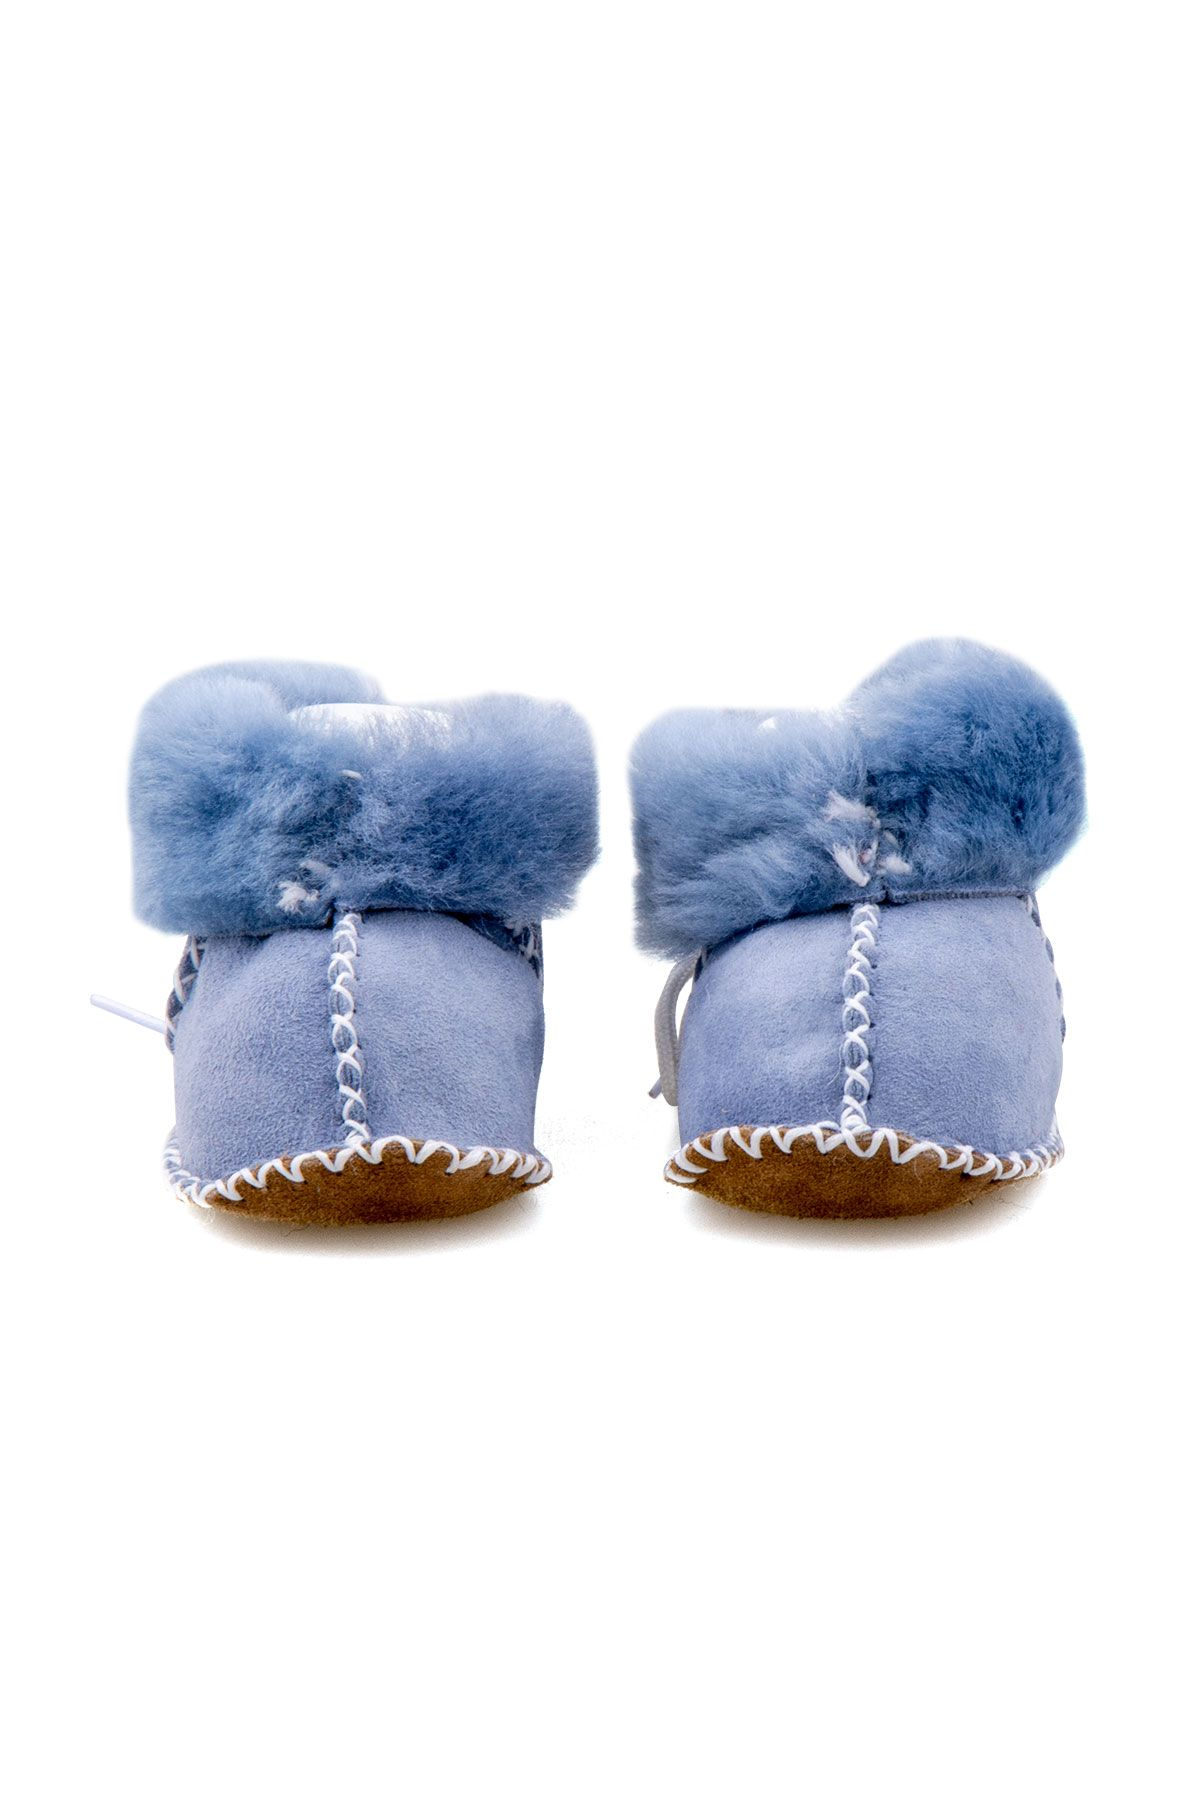 Pegia Shearling Baby's Booties 141114 Blue